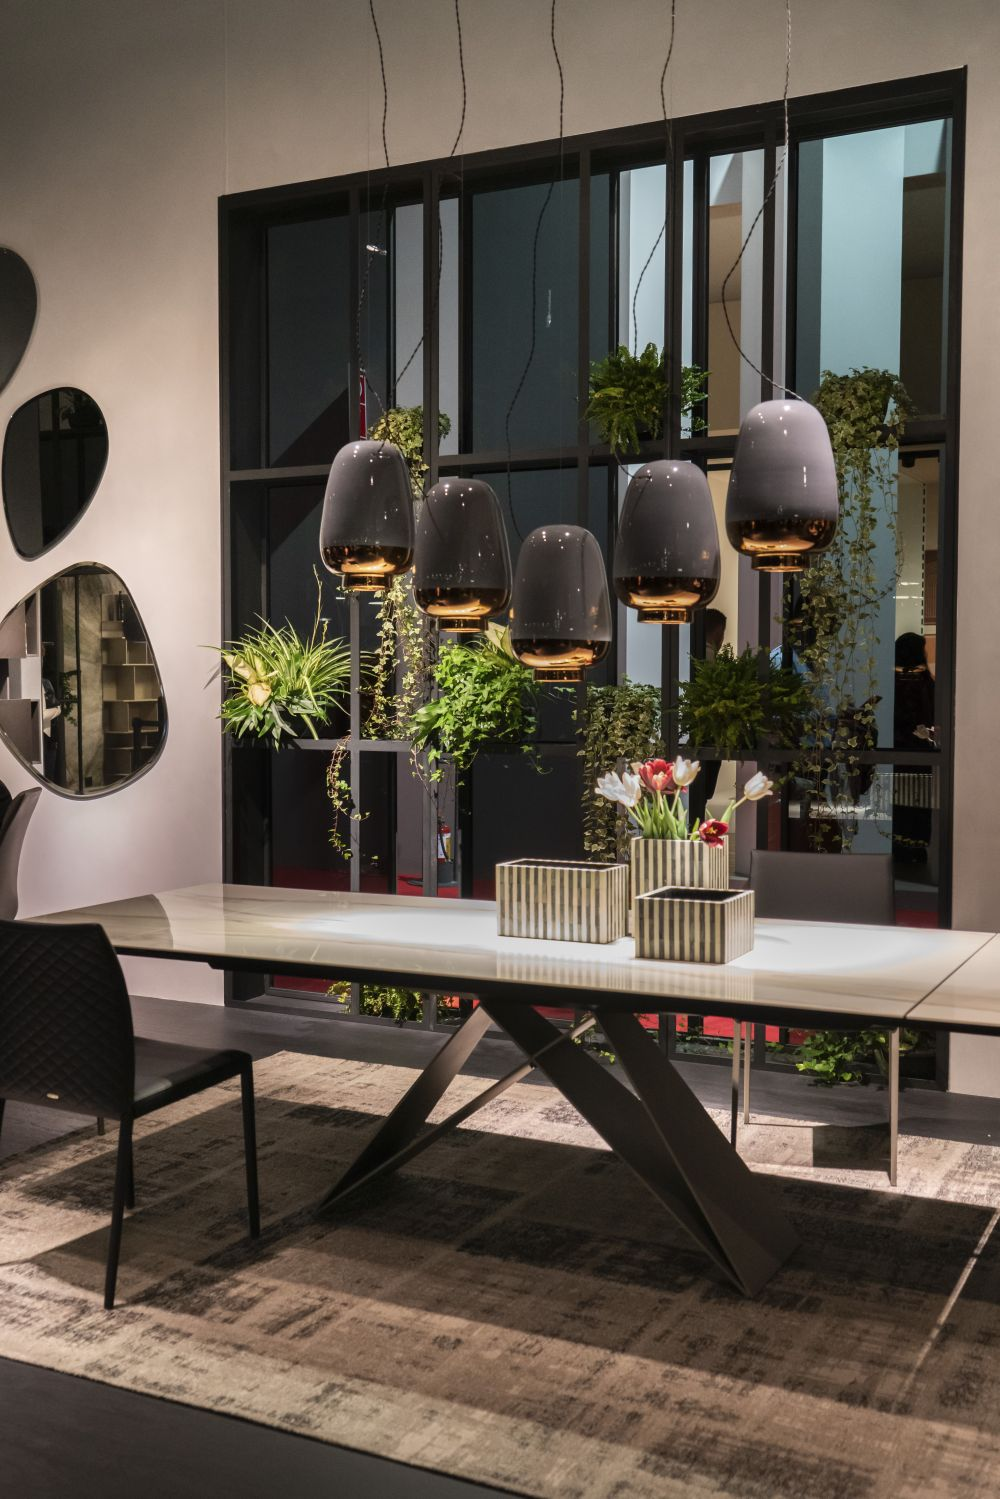 Cattelan premier dining table and asia pendant lights - Lighting Fixtures that Will Add a Bid Dose of Drama to Your Room